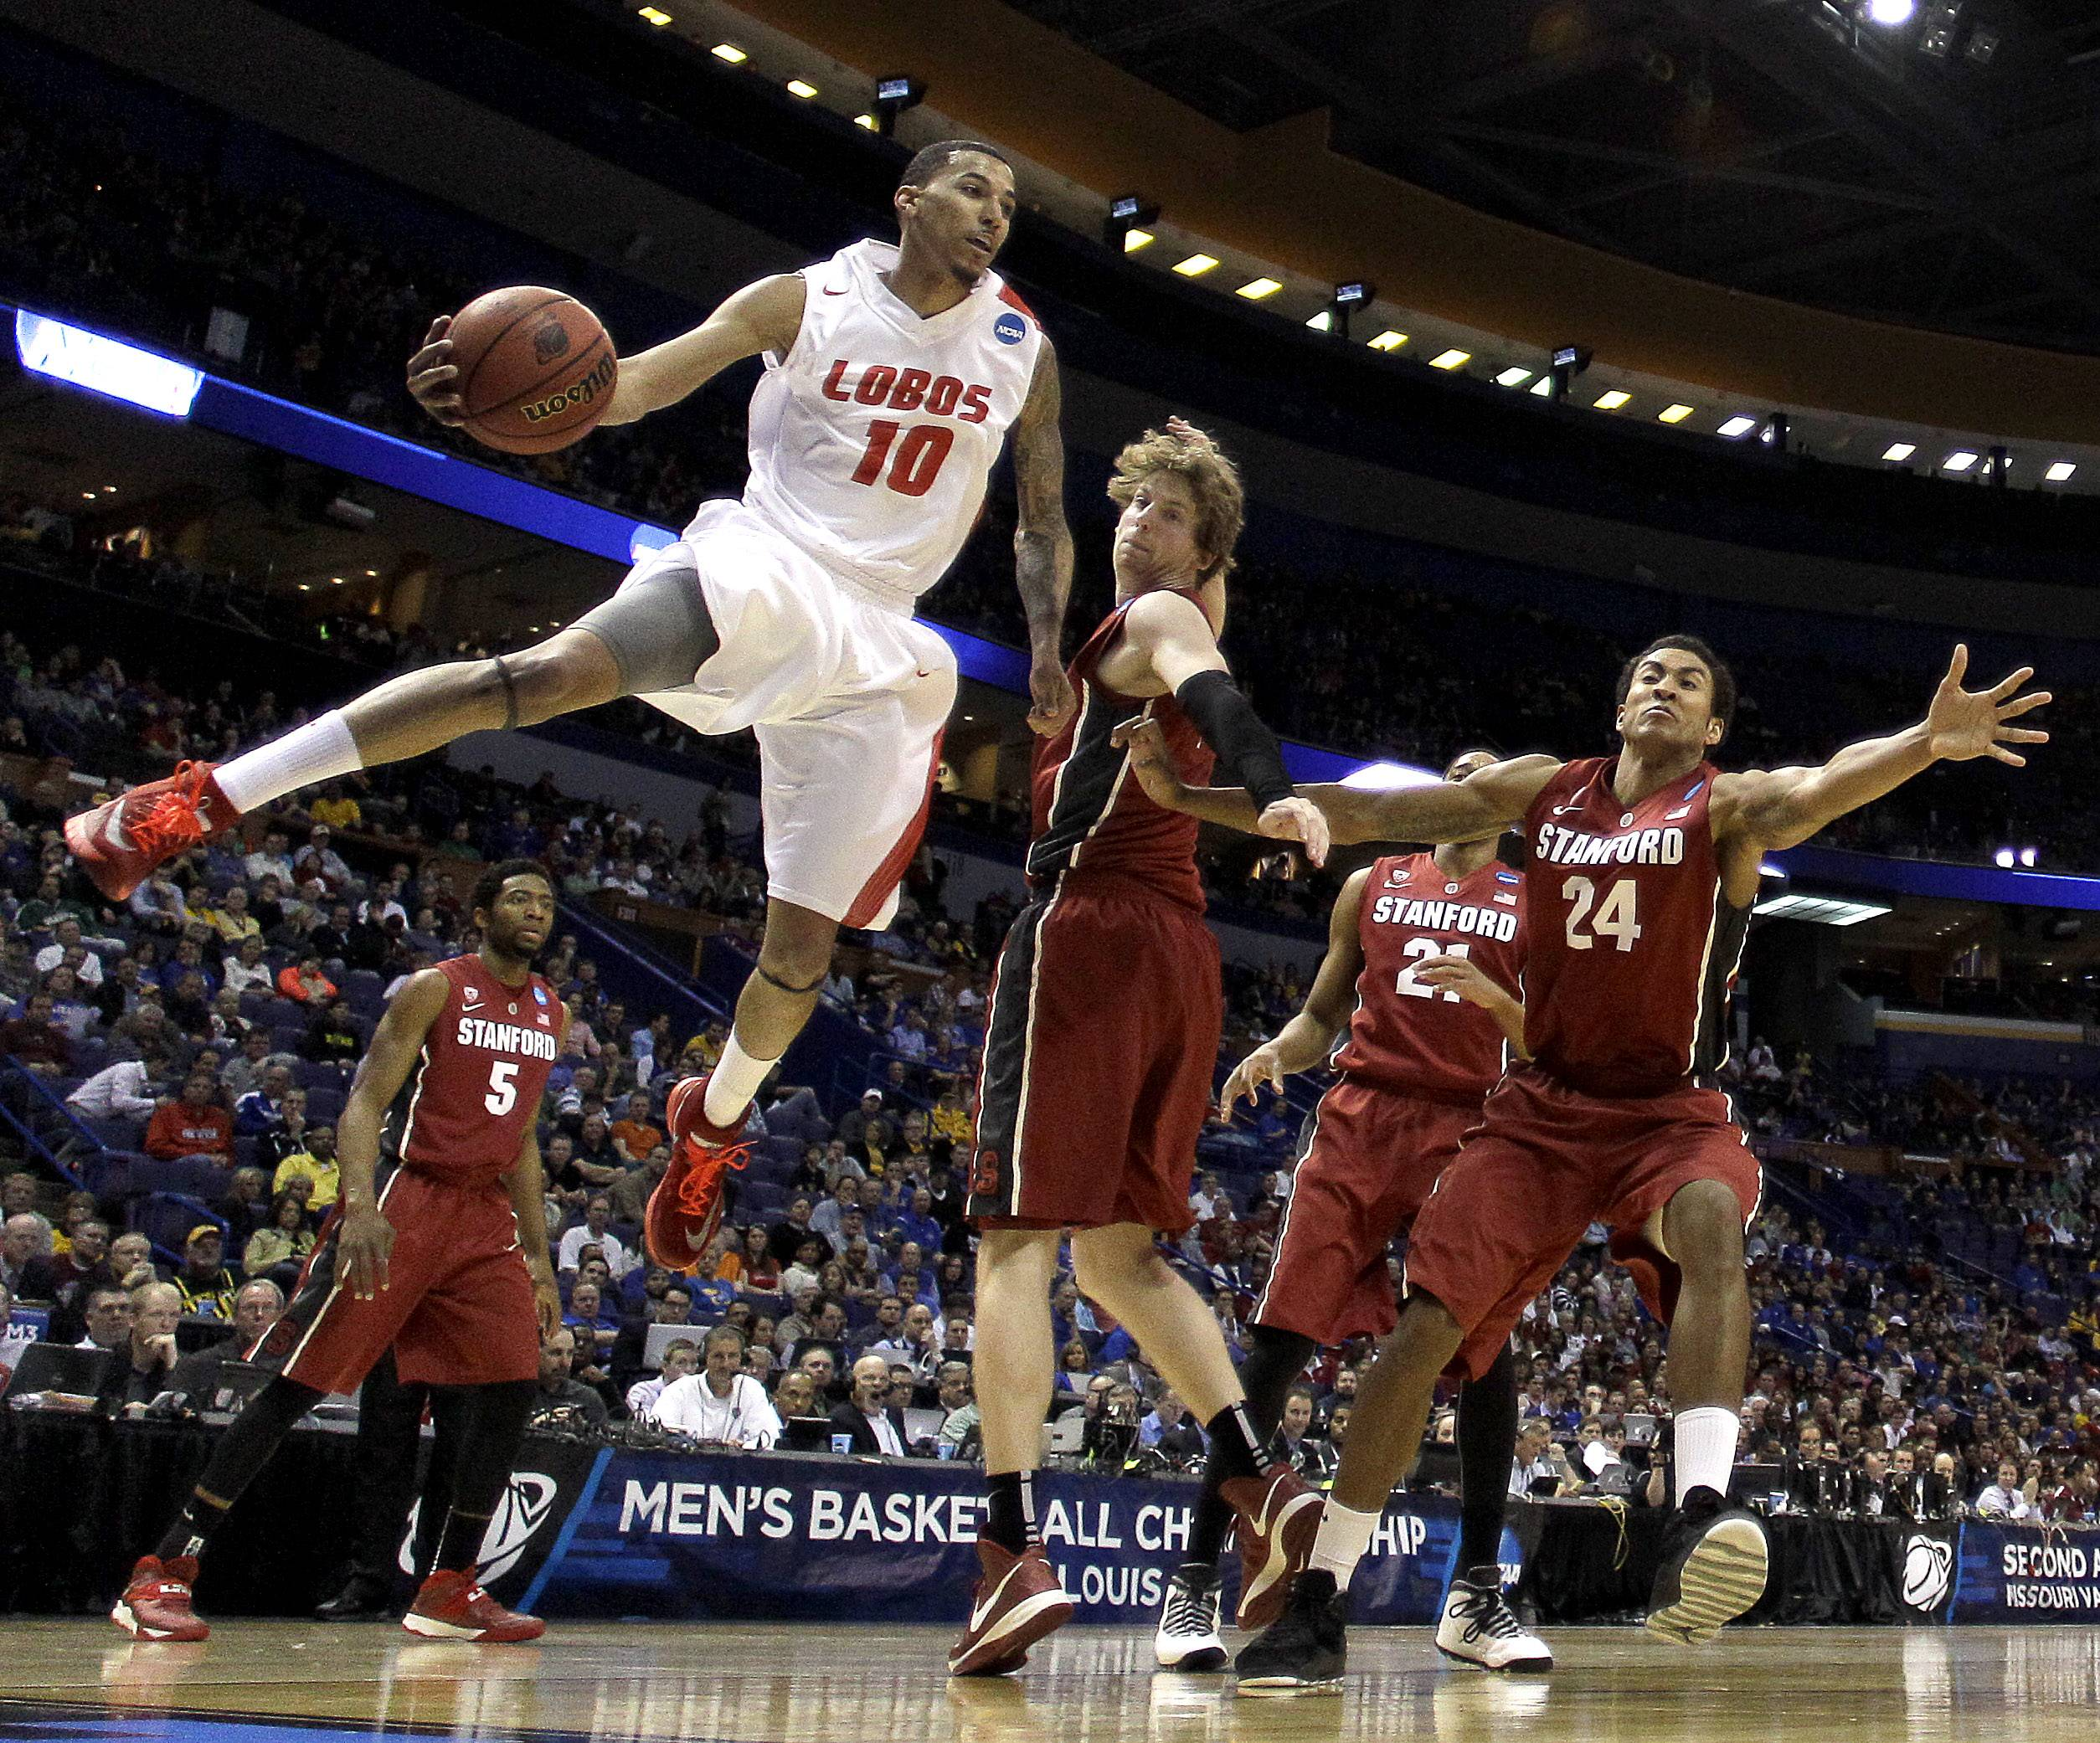 New Mexico's Kendall Williams (10) passes around Stanford's John Gage during the second half of a second-round game in the NCAA college basketball tournament, Friday, March 21, 2014, in St. Louis. Stanford won the game 58-53.